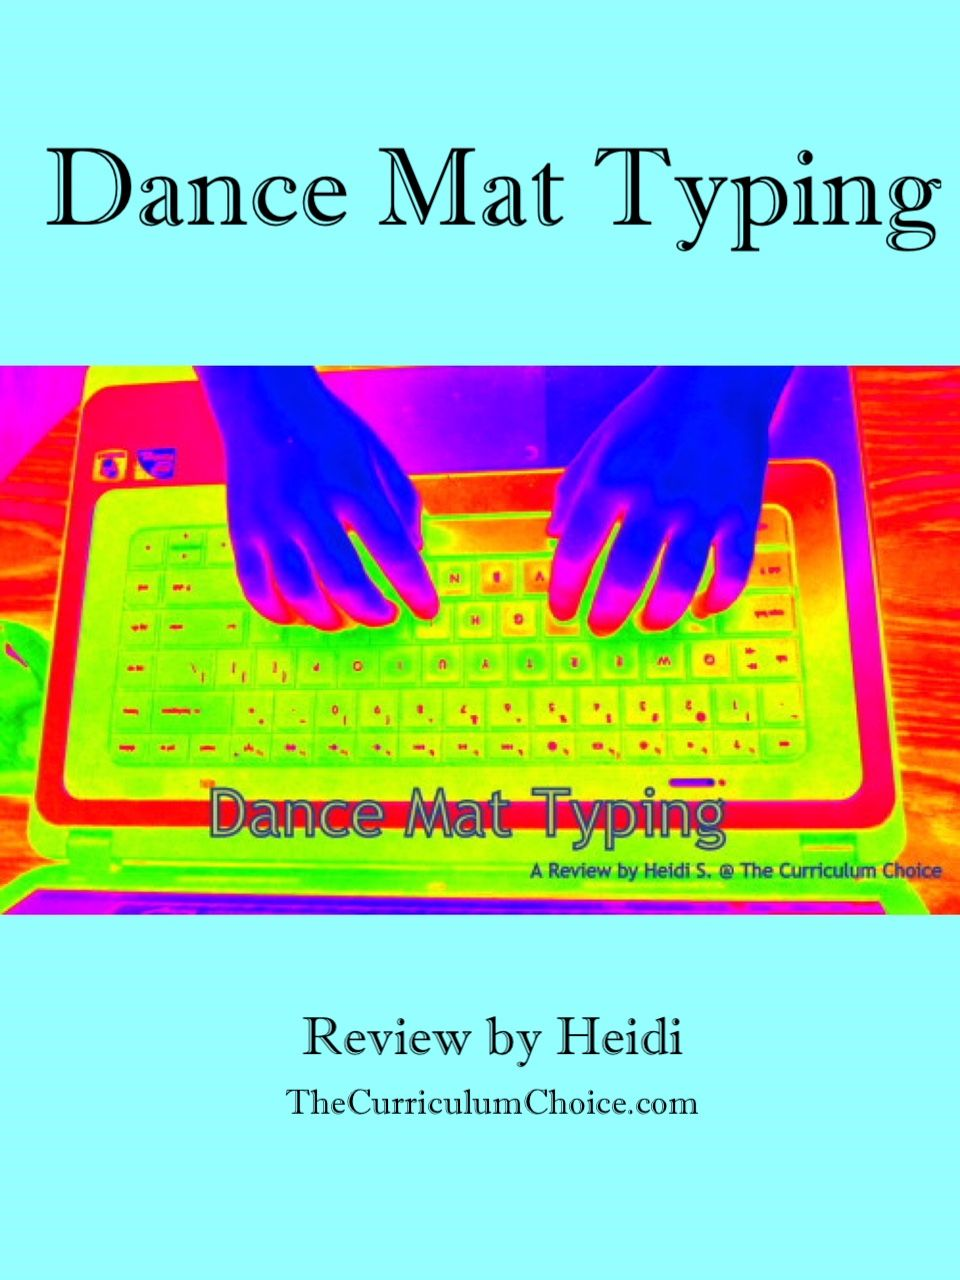 dance mat typing - a free beginner's touch typing tutorial | online